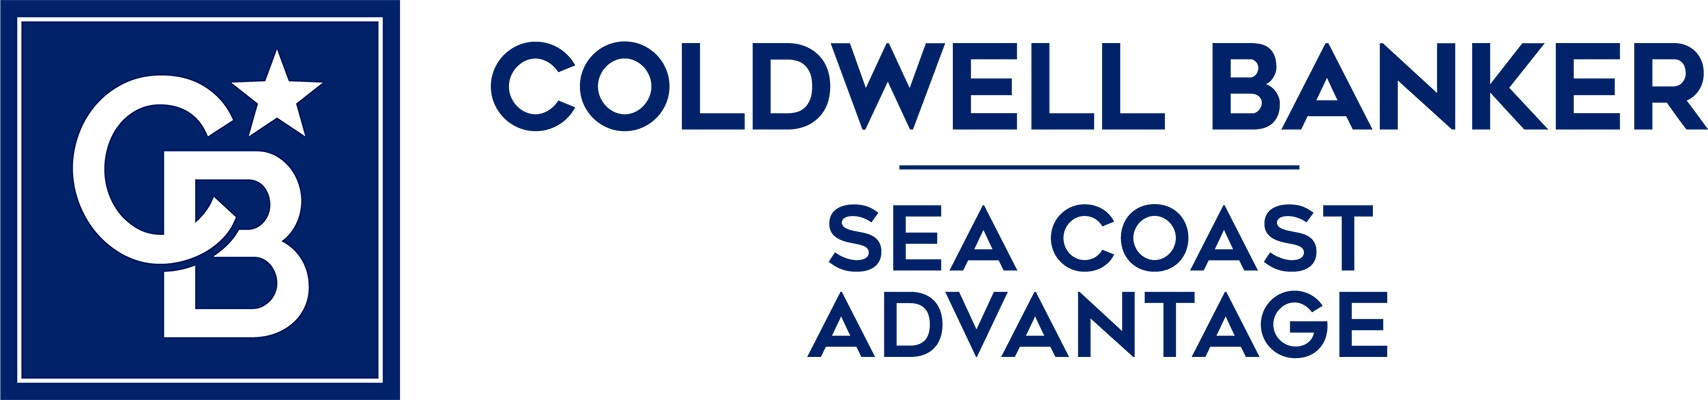 Kim Mullis - Coldwell Banker Sea Coast Advantage Realty